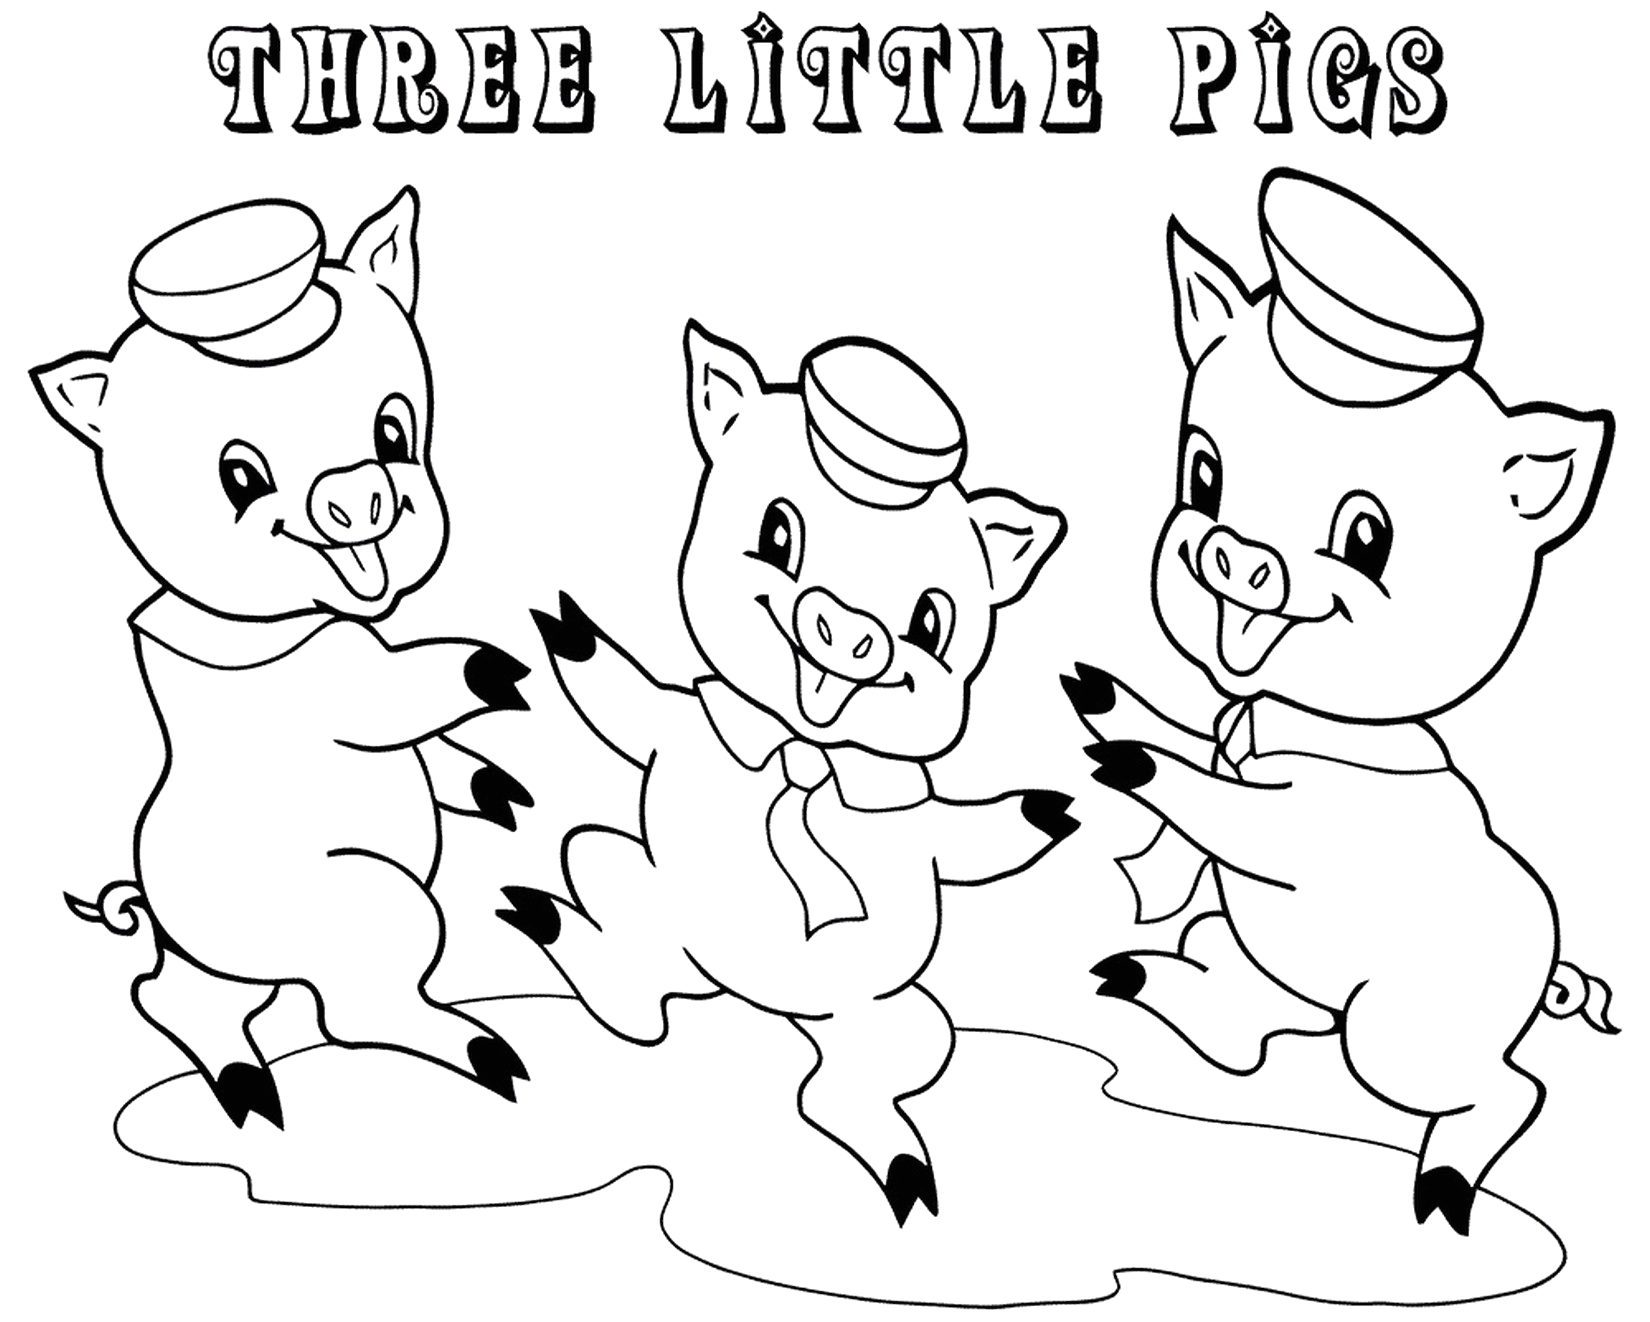 Free Coloring Pages Of the Three Little Pigs Three Little Pigs Coloring Pages for Preschool Fun